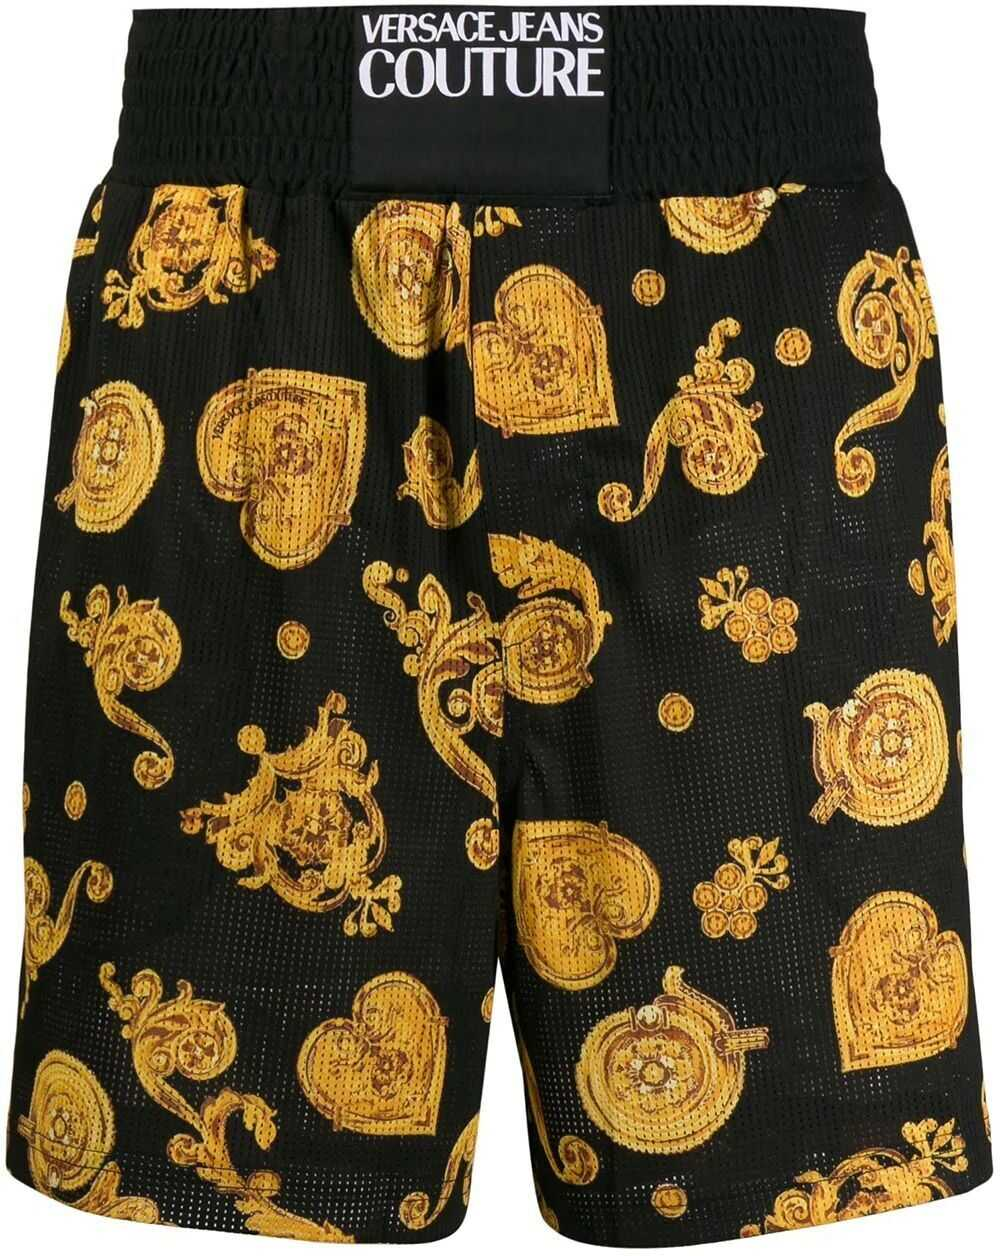 Versace Jeans Polyester Shorts BLACK